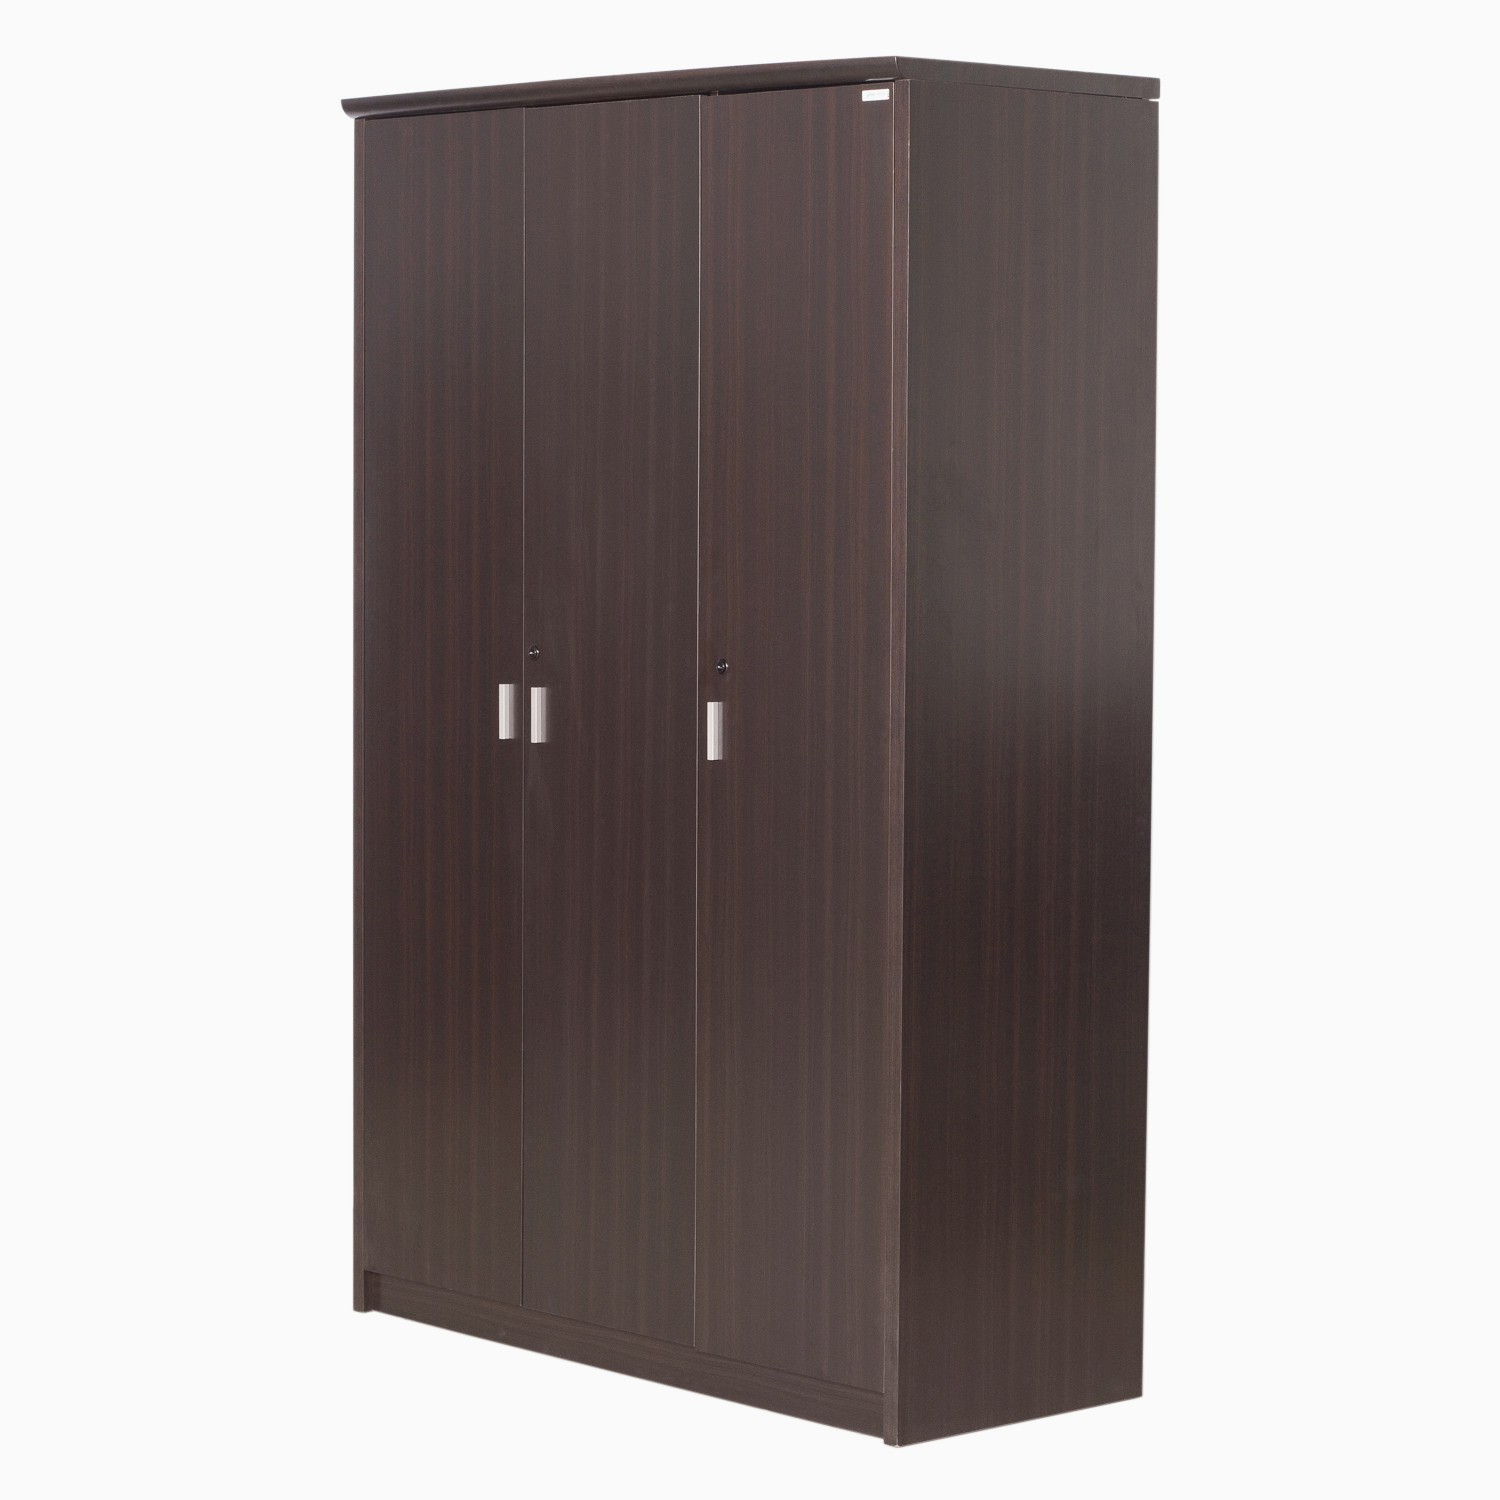 Storage units price list in india november 2017 buy storage units online Godrej interio home furniture price list